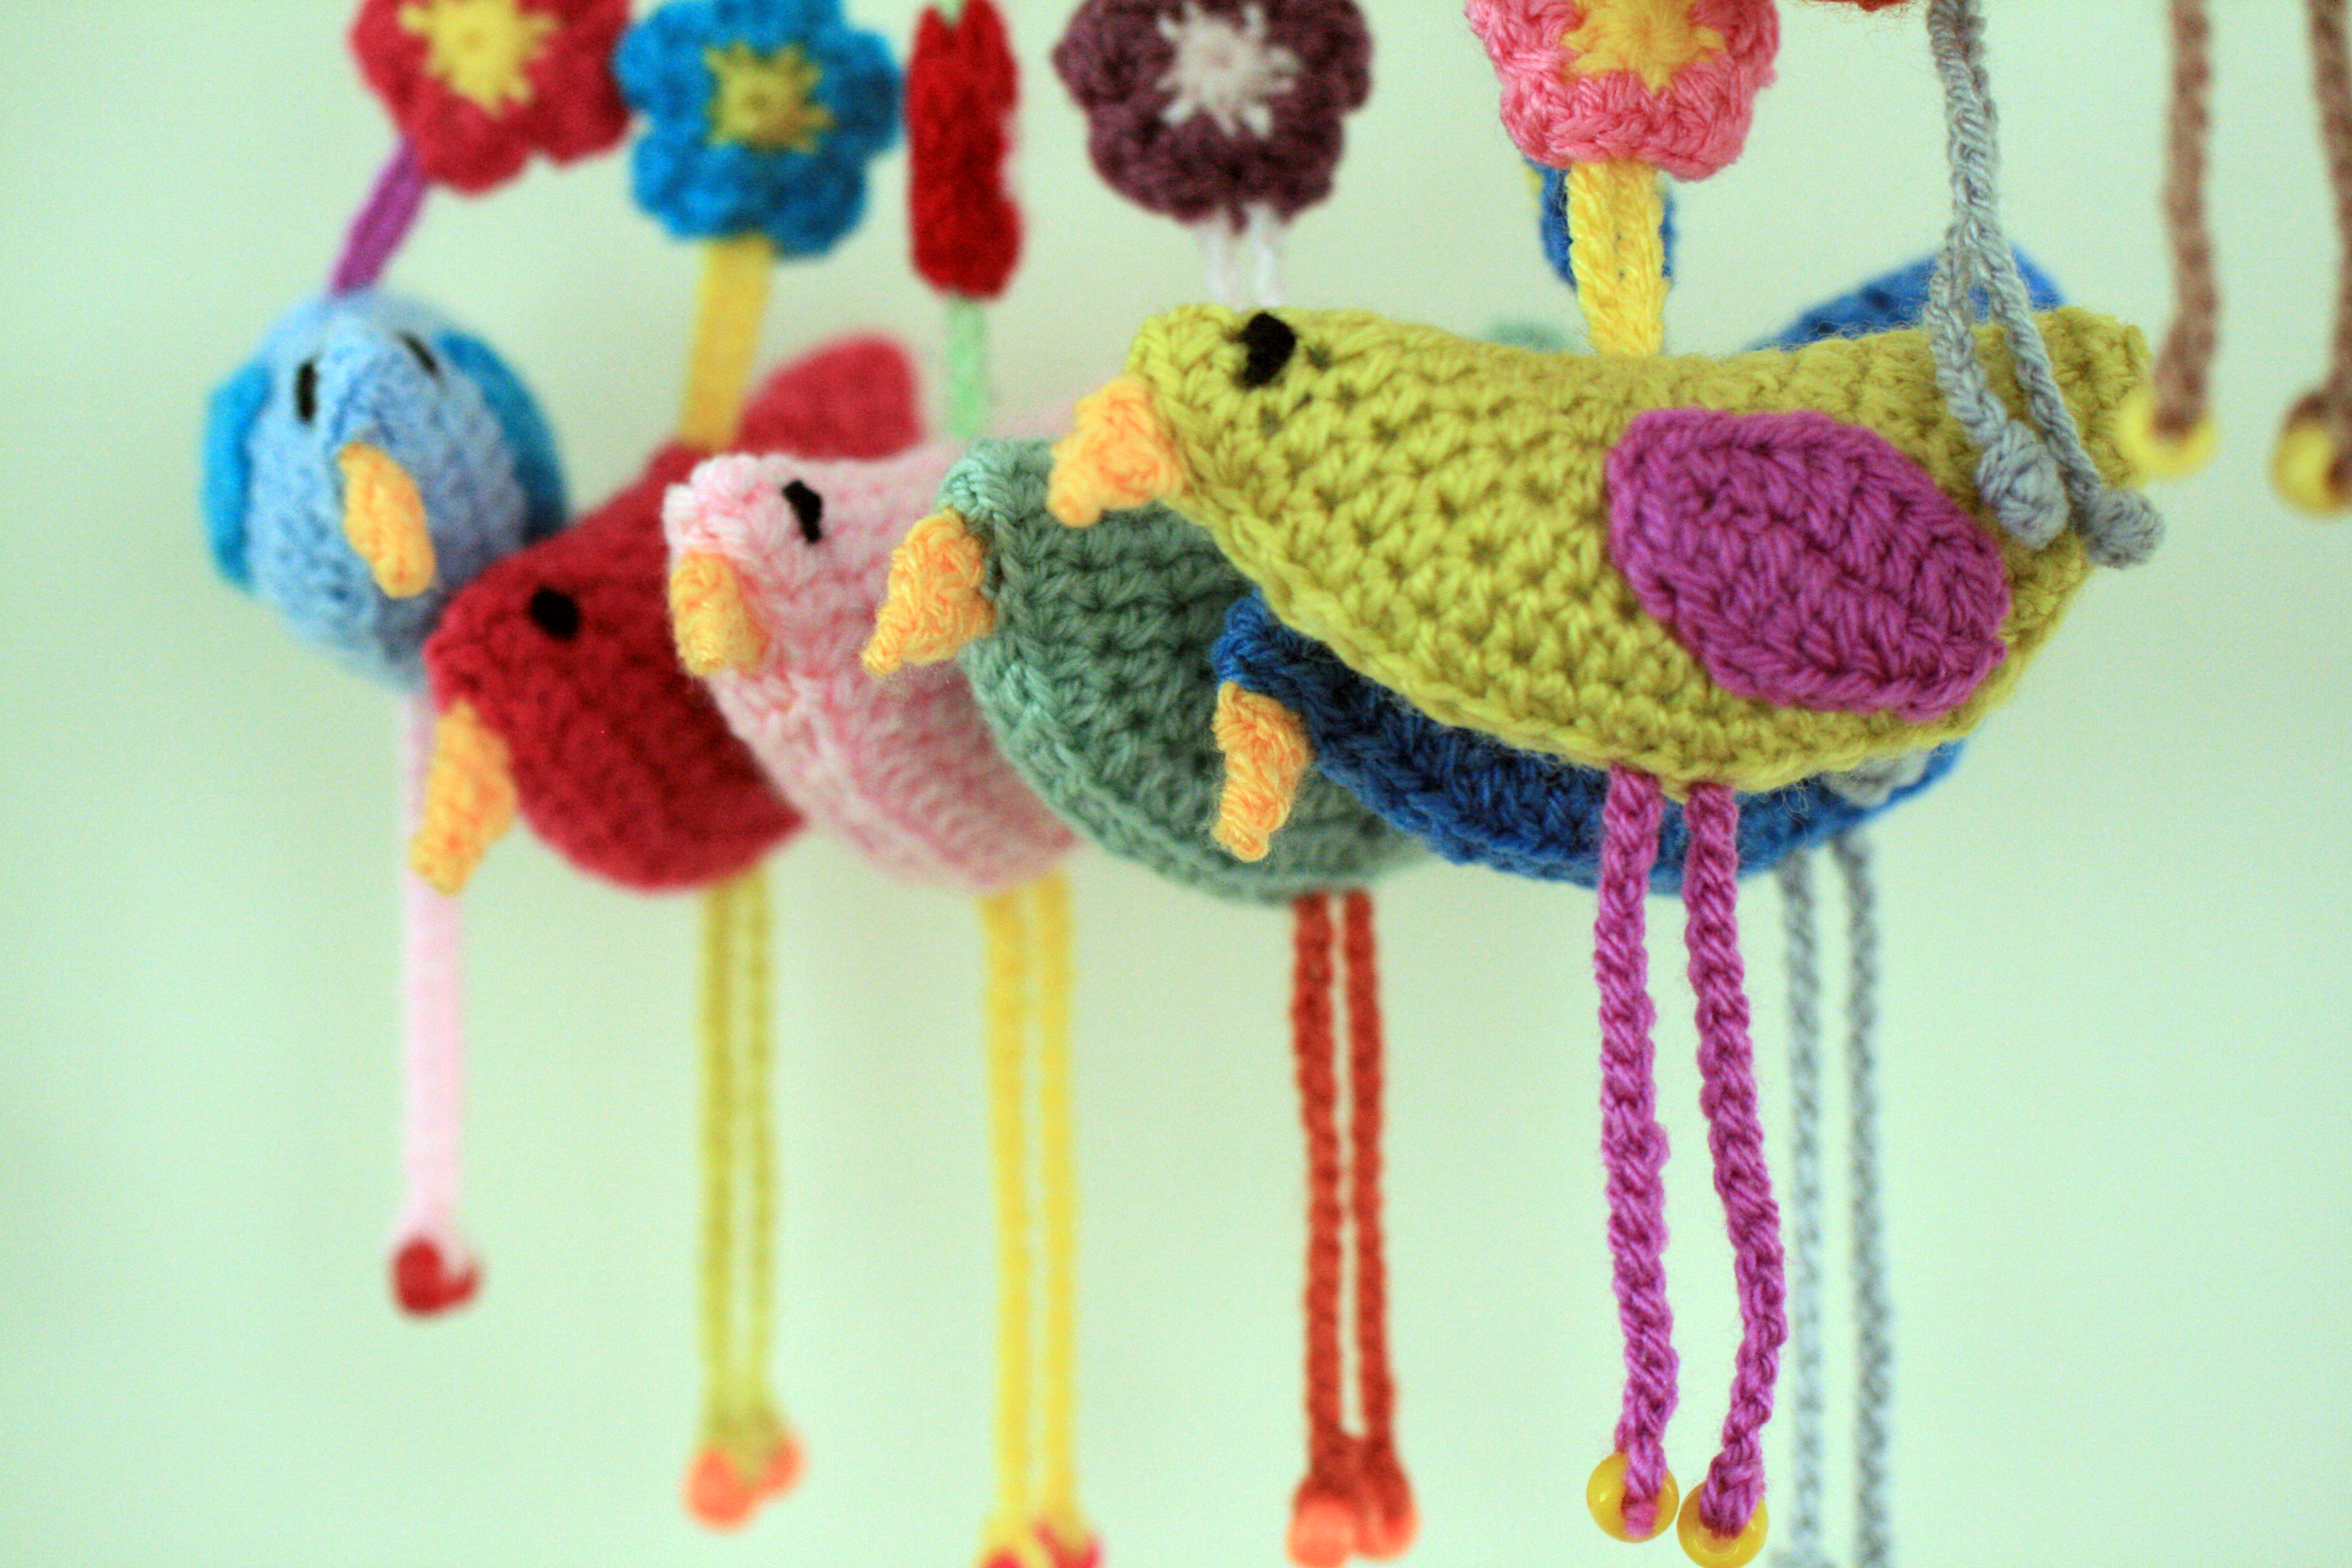 Crochet Patterns For Yarn Bombing : Charity Yarn Bombing Details and Patterns thegrangerange